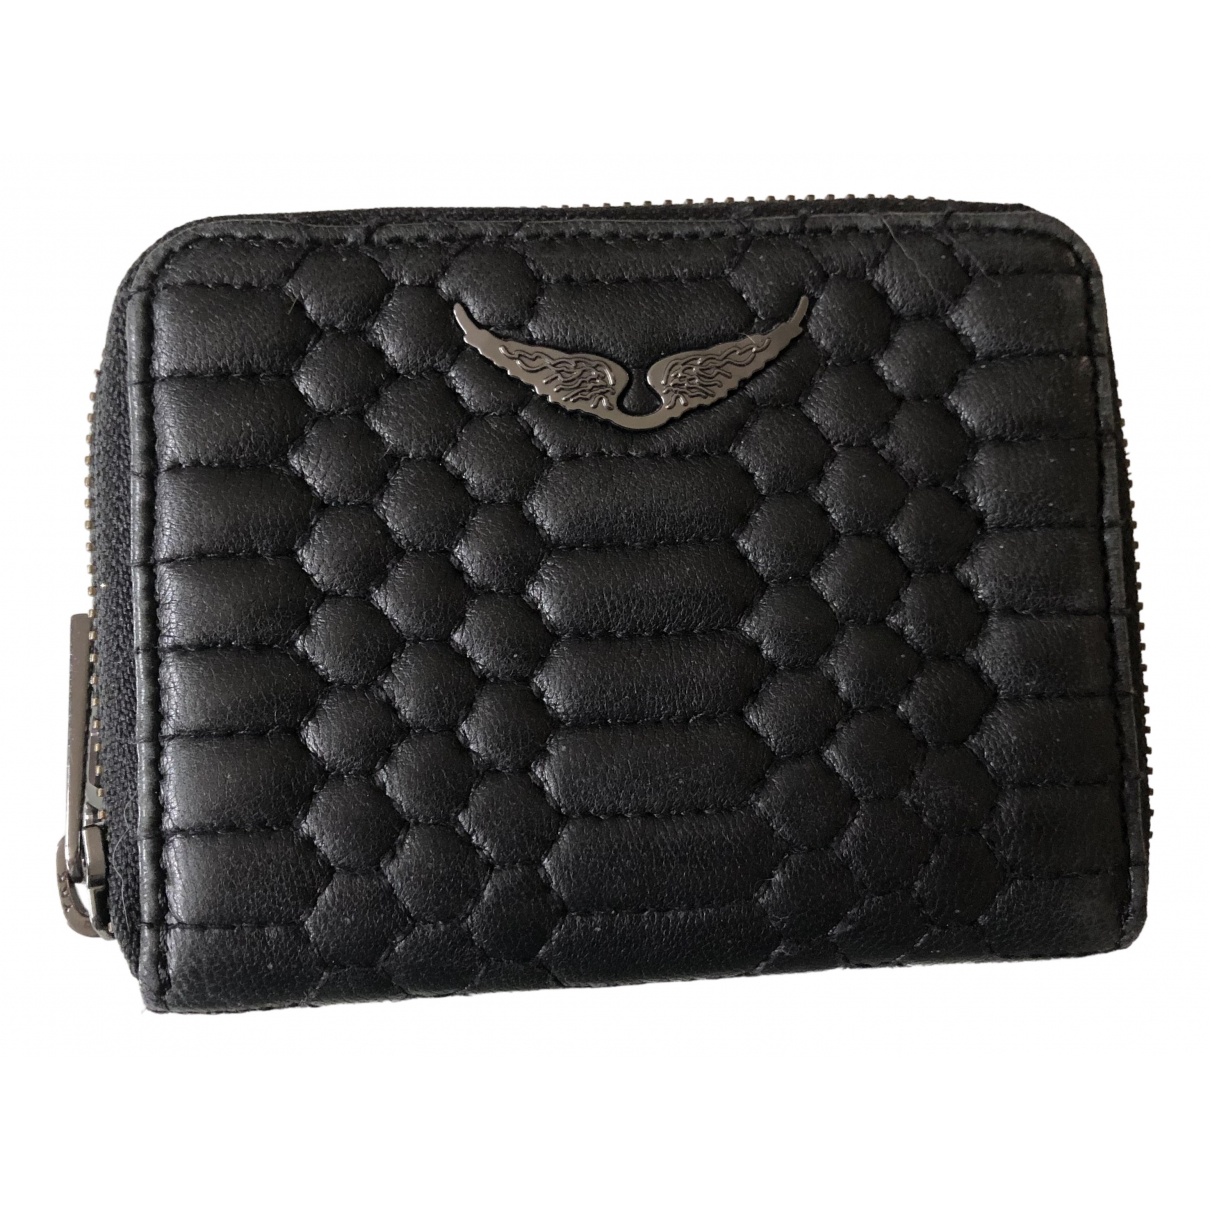 Zadig & Voltaire \N Black Leather wallet for Women \N